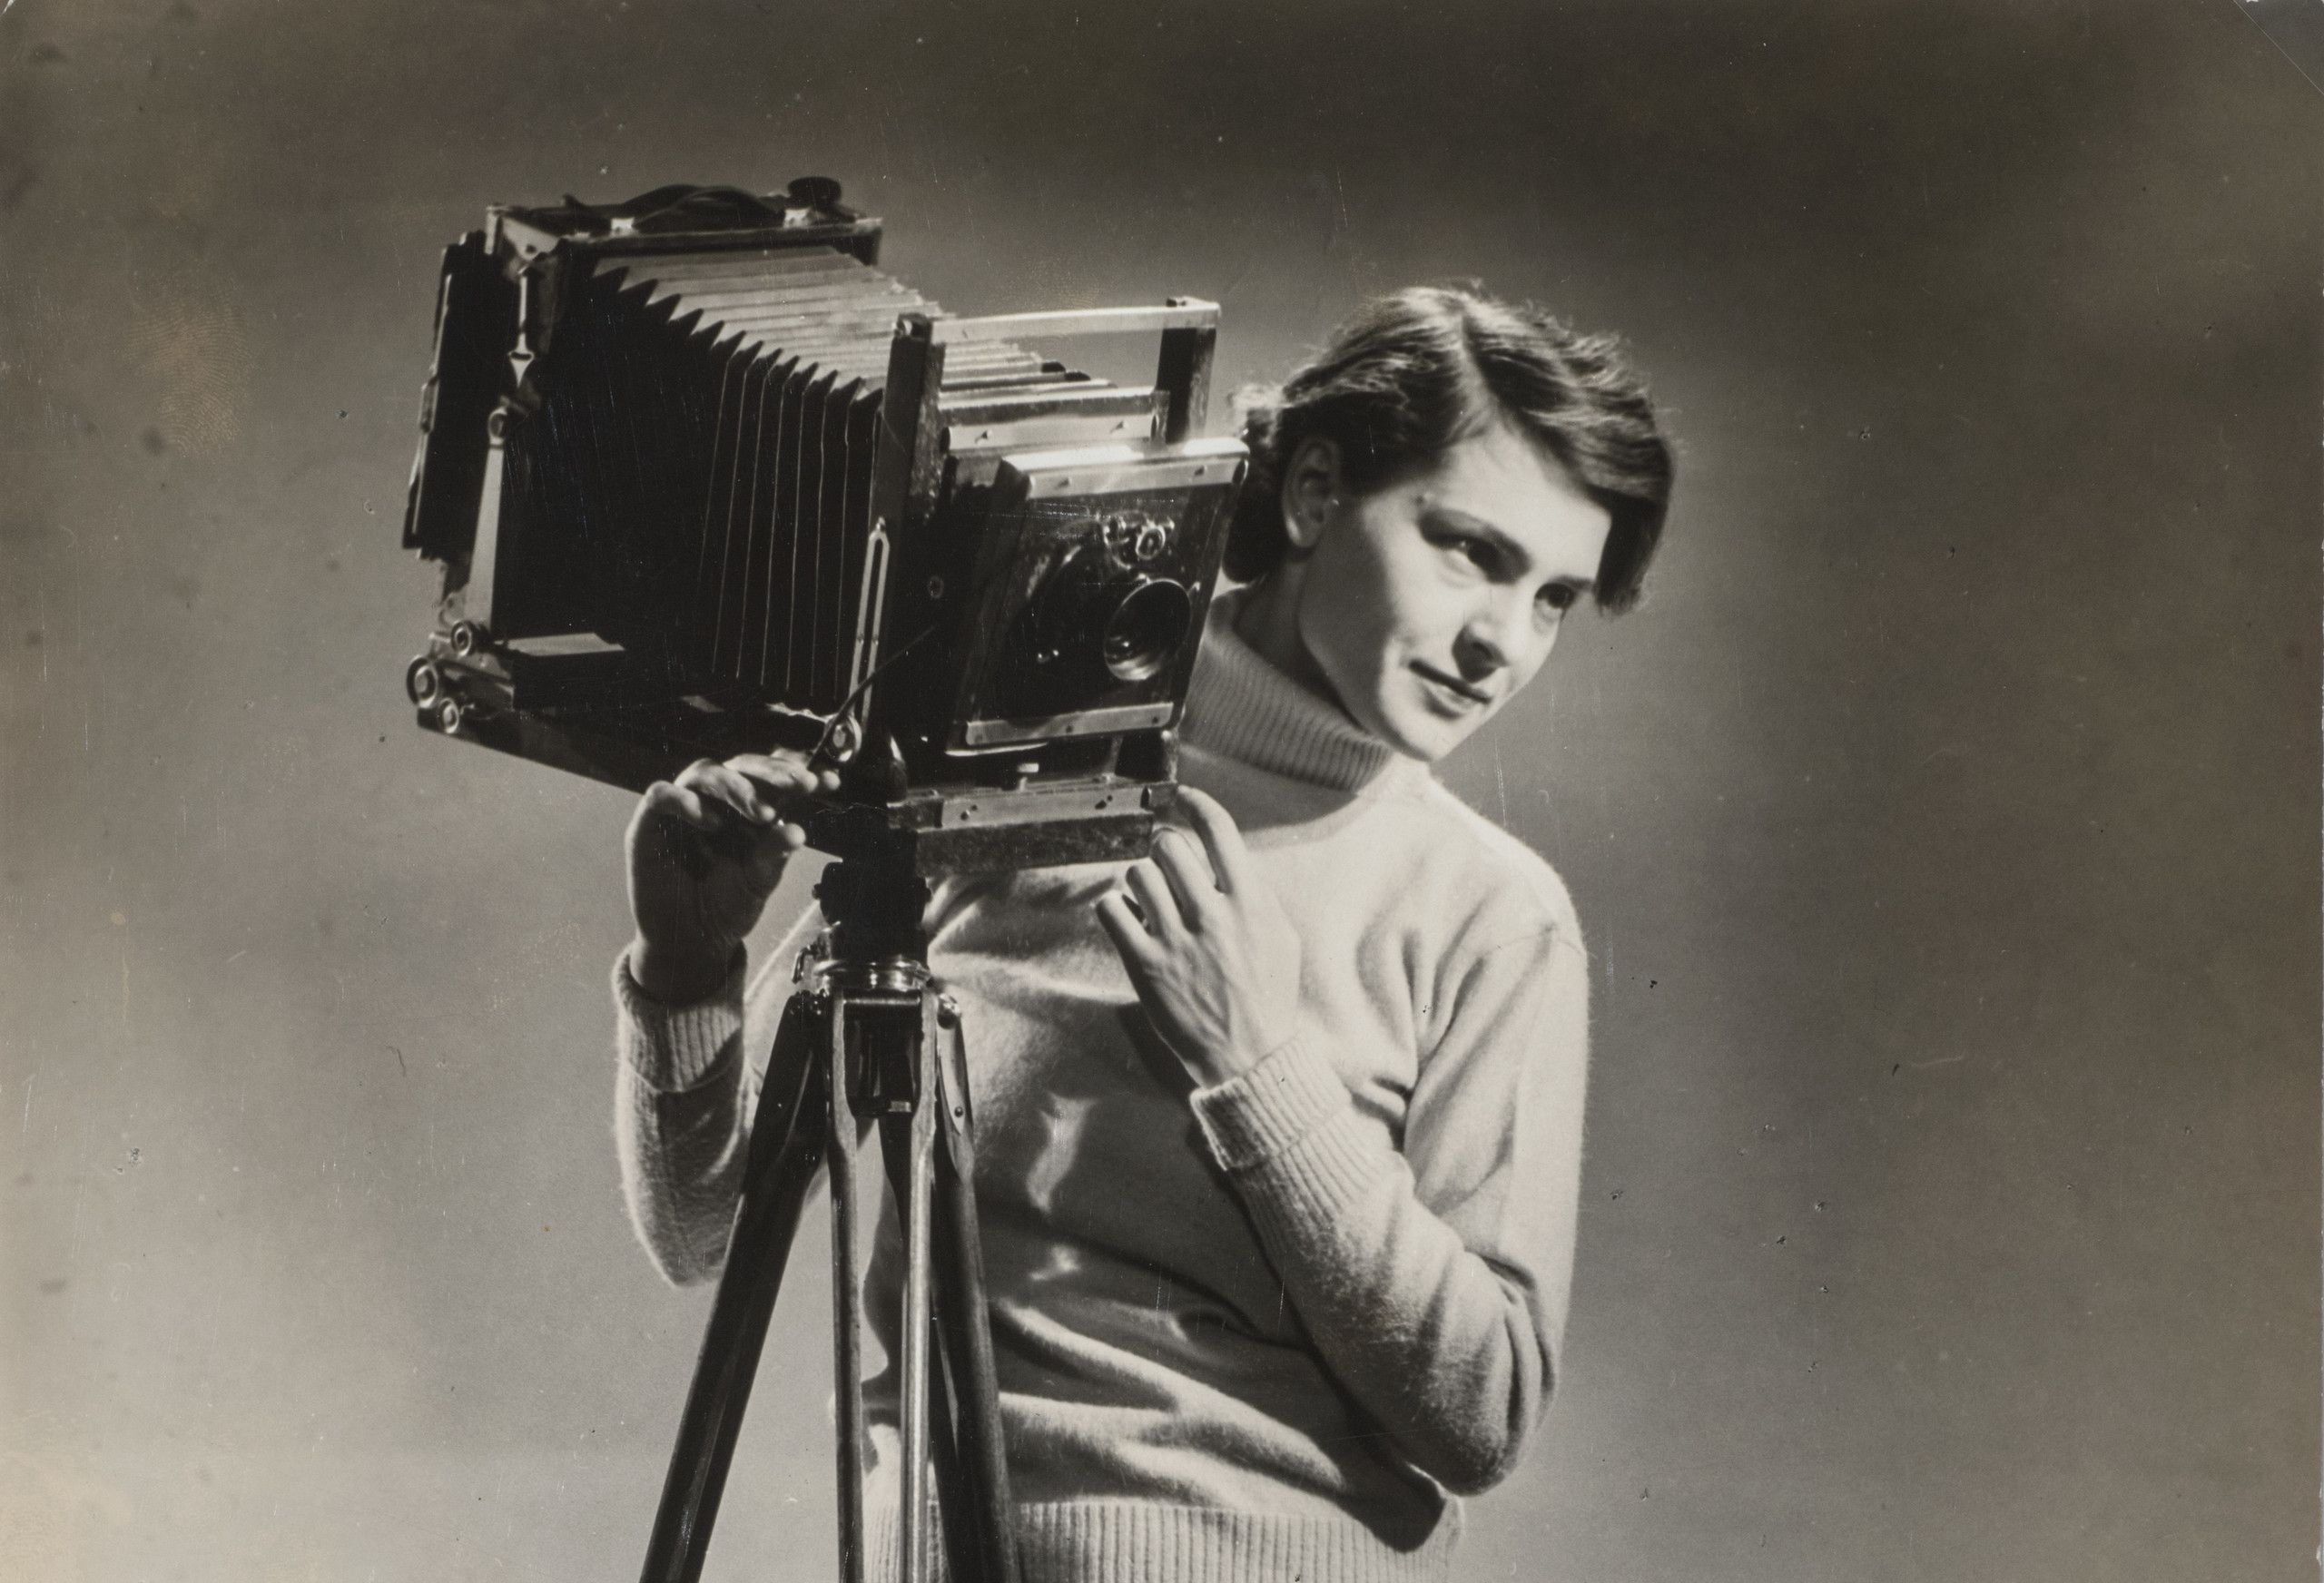 A black-and-white photograph of a light-skinned adult woman standing next to a vintage camera mounted on legs.